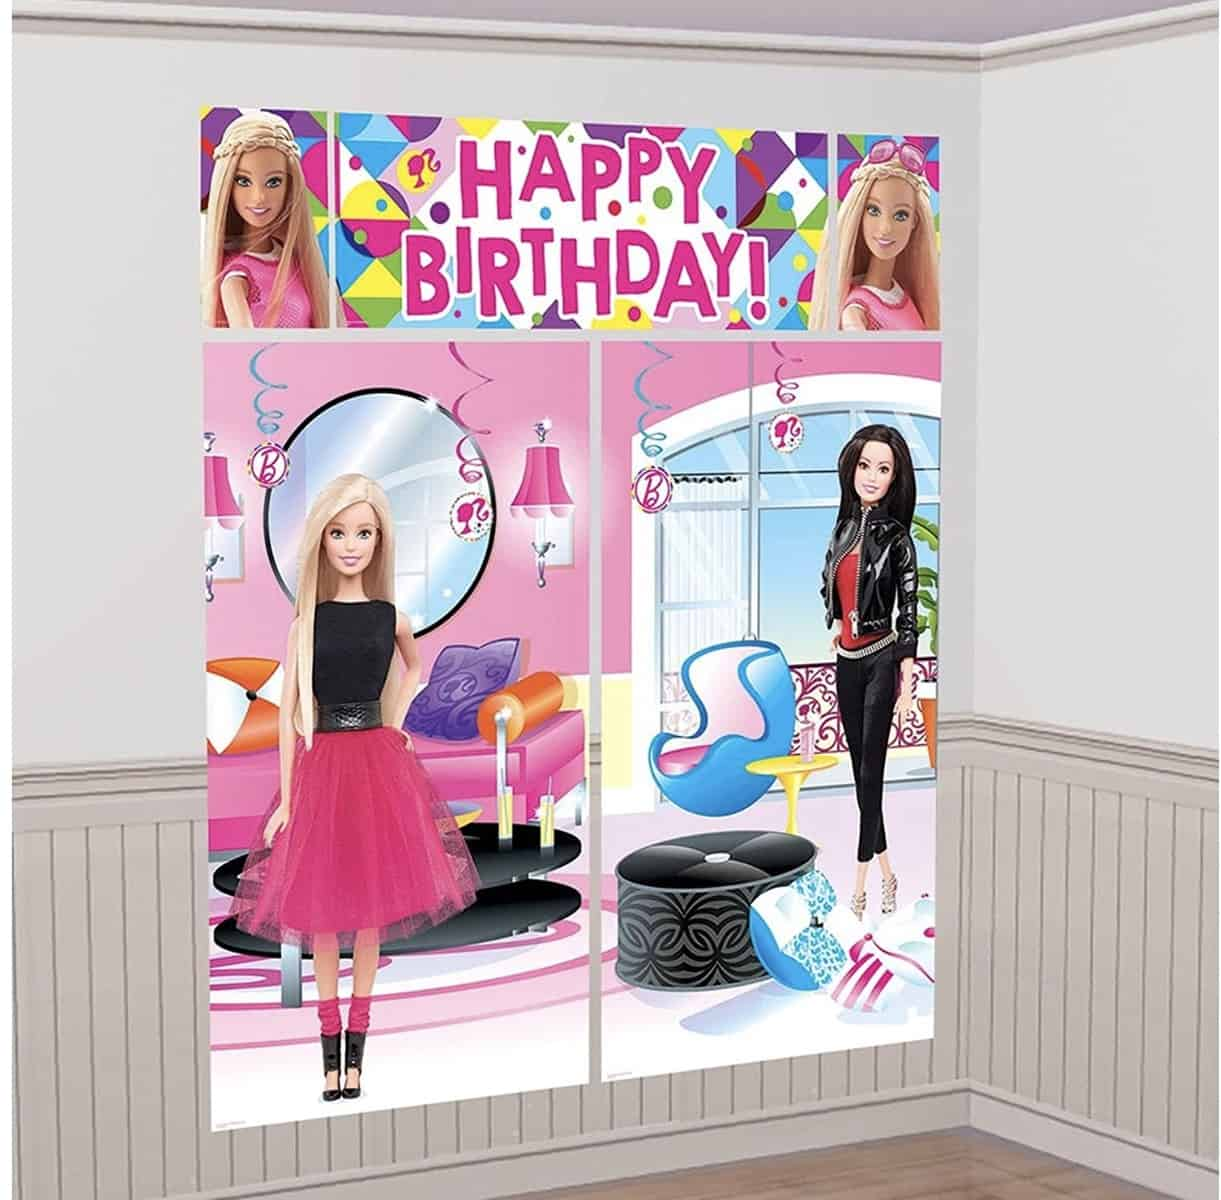 Birthday Birthday Party decorations and ideas. Save money on your Barbie Birthday Party. #barbie #birthday #party #barbiebirthdayparty #ideas #decorations